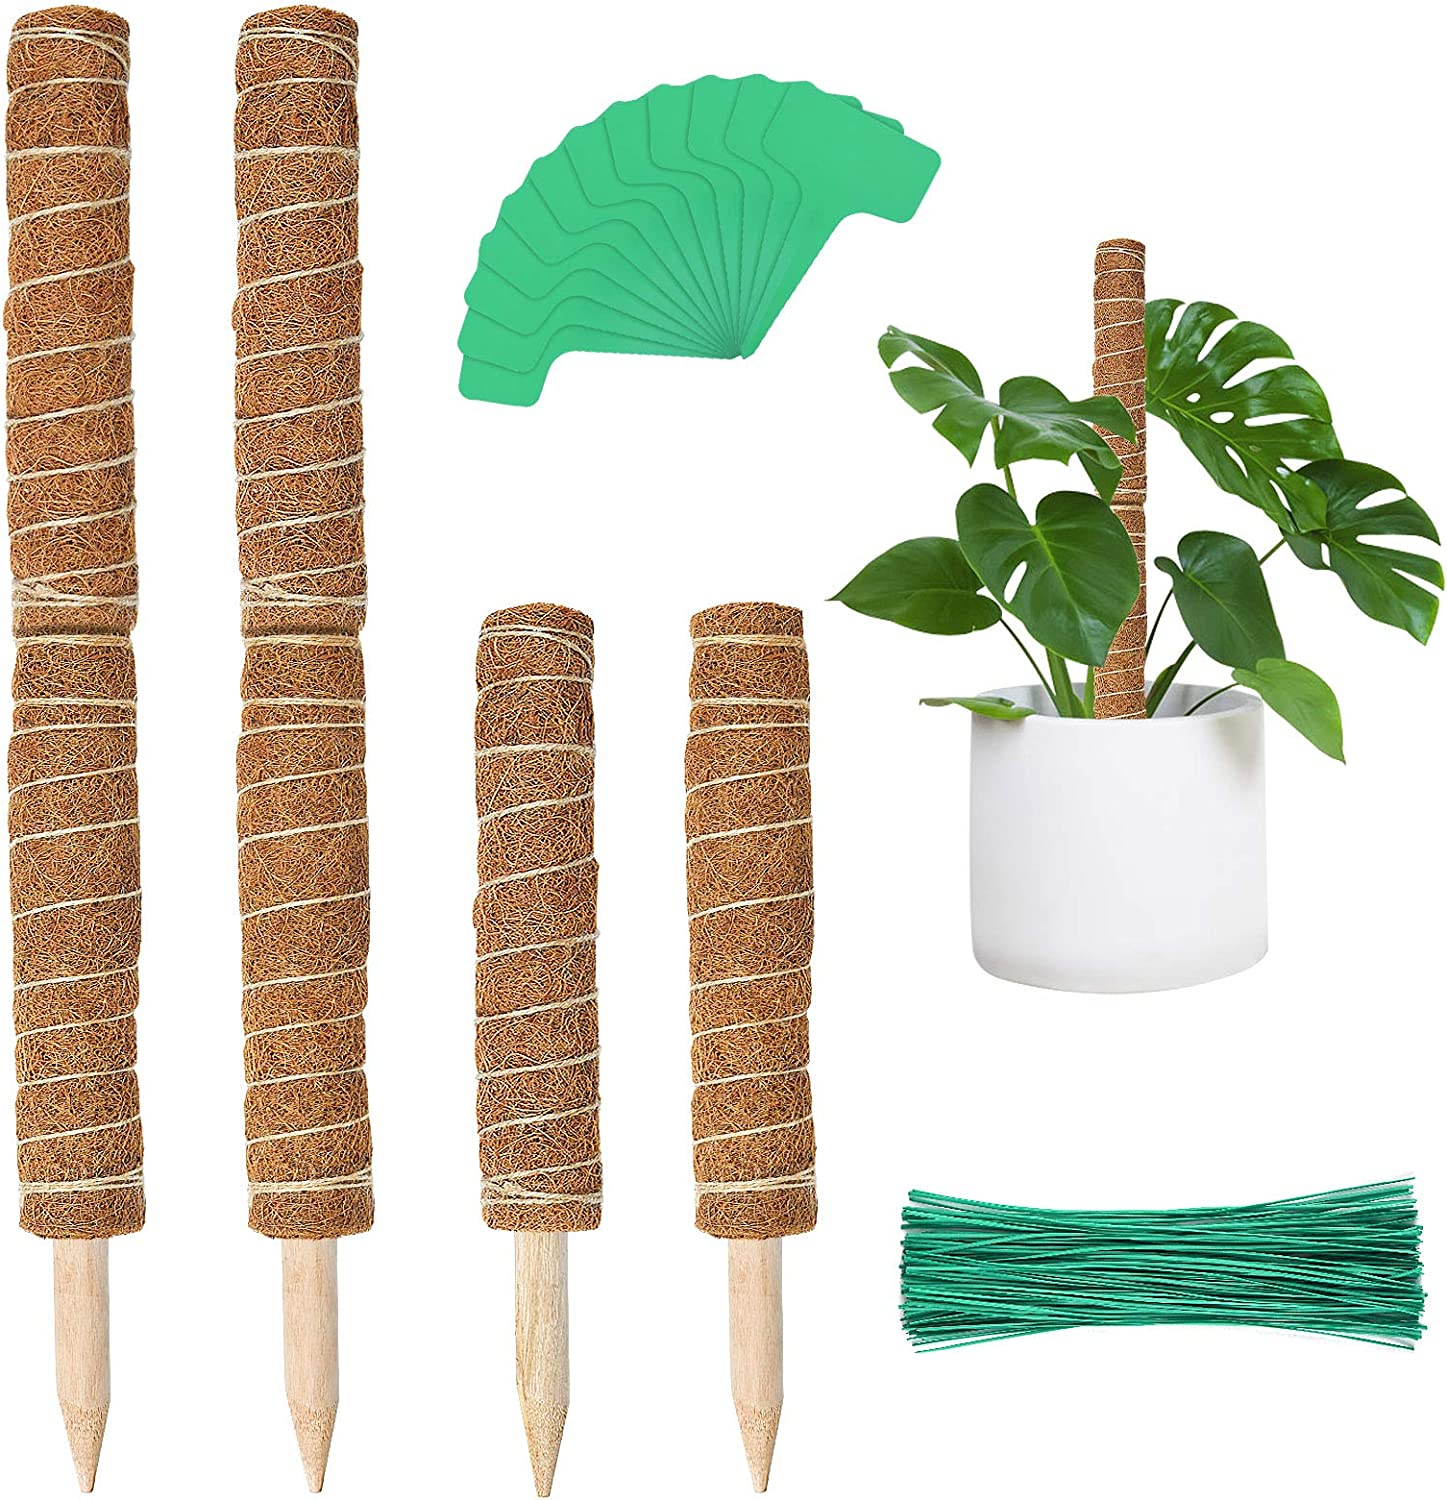 EAONE 6 PCS 15.7'' Moss Poles, Stackable Coir Totem Pole Plant Support Extension with 12 Pcs Plant Labels and 100 Pcs Ties for Potted Climbing Plants Monstera Creepers